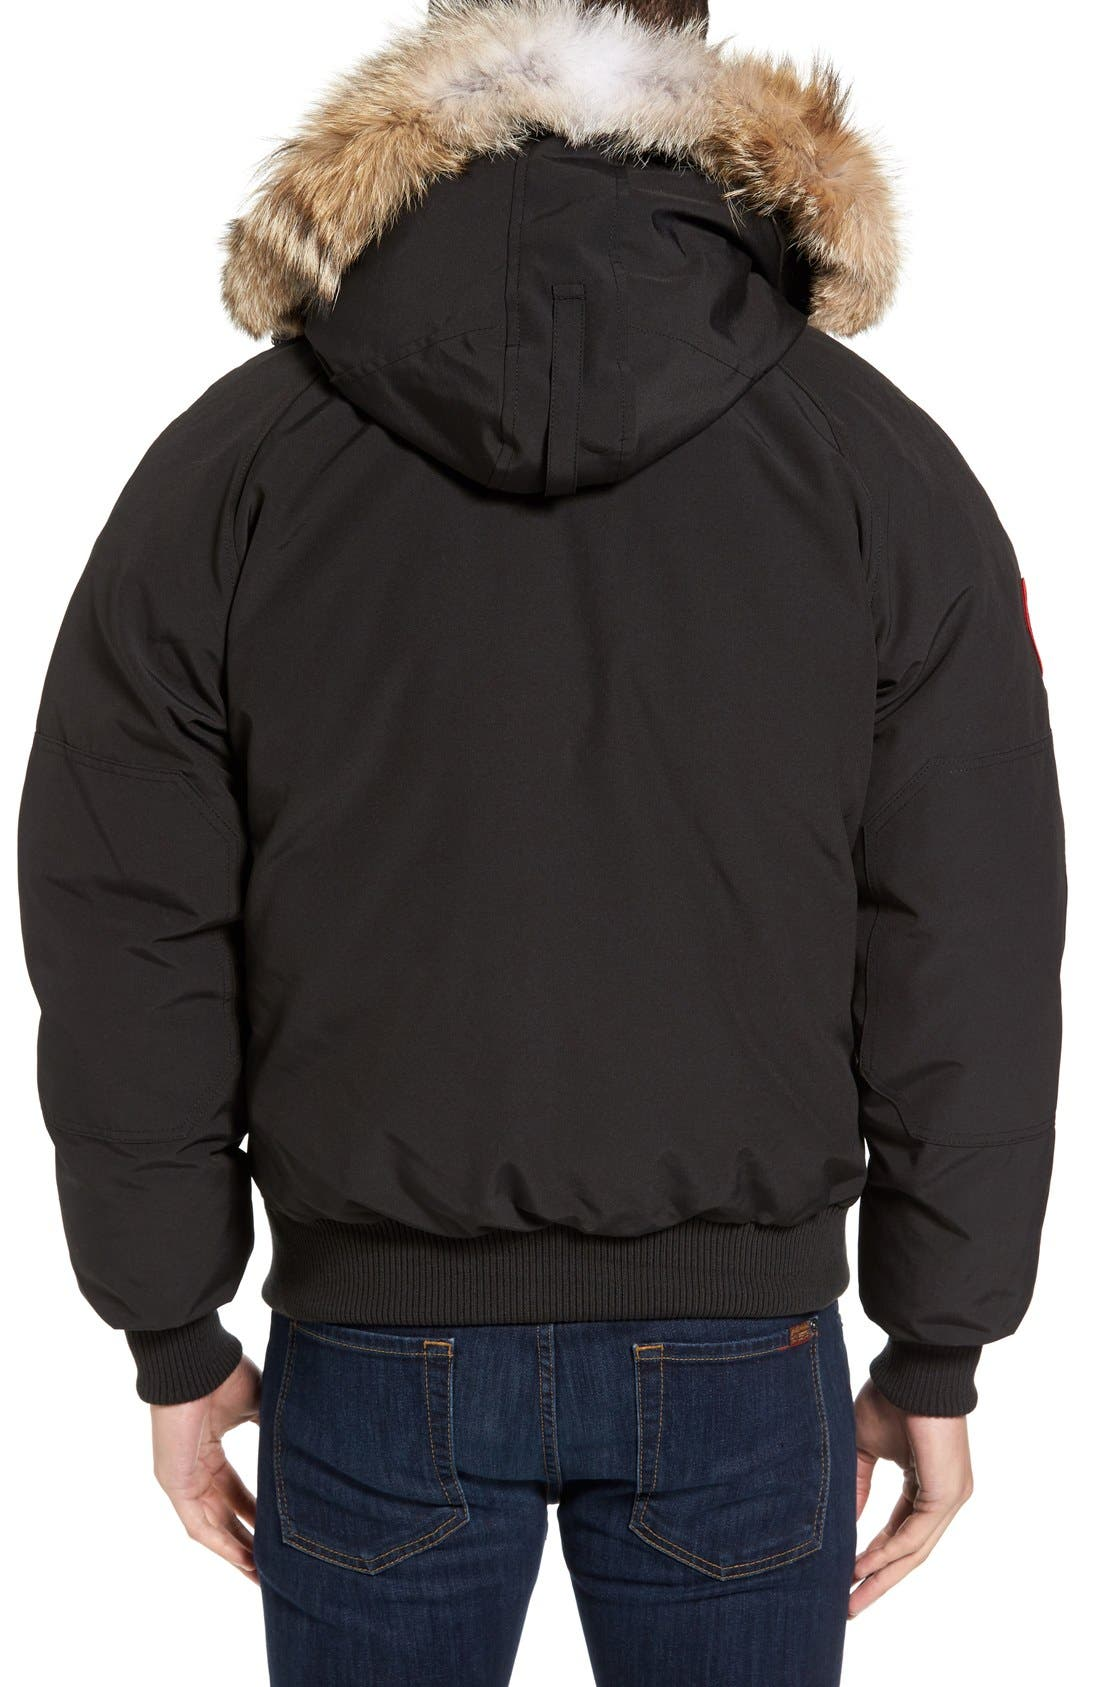 'Chilliwack' Down Bomber Jacket with Genuine Coyote Trim,                             Main thumbnail 1, color,                             001